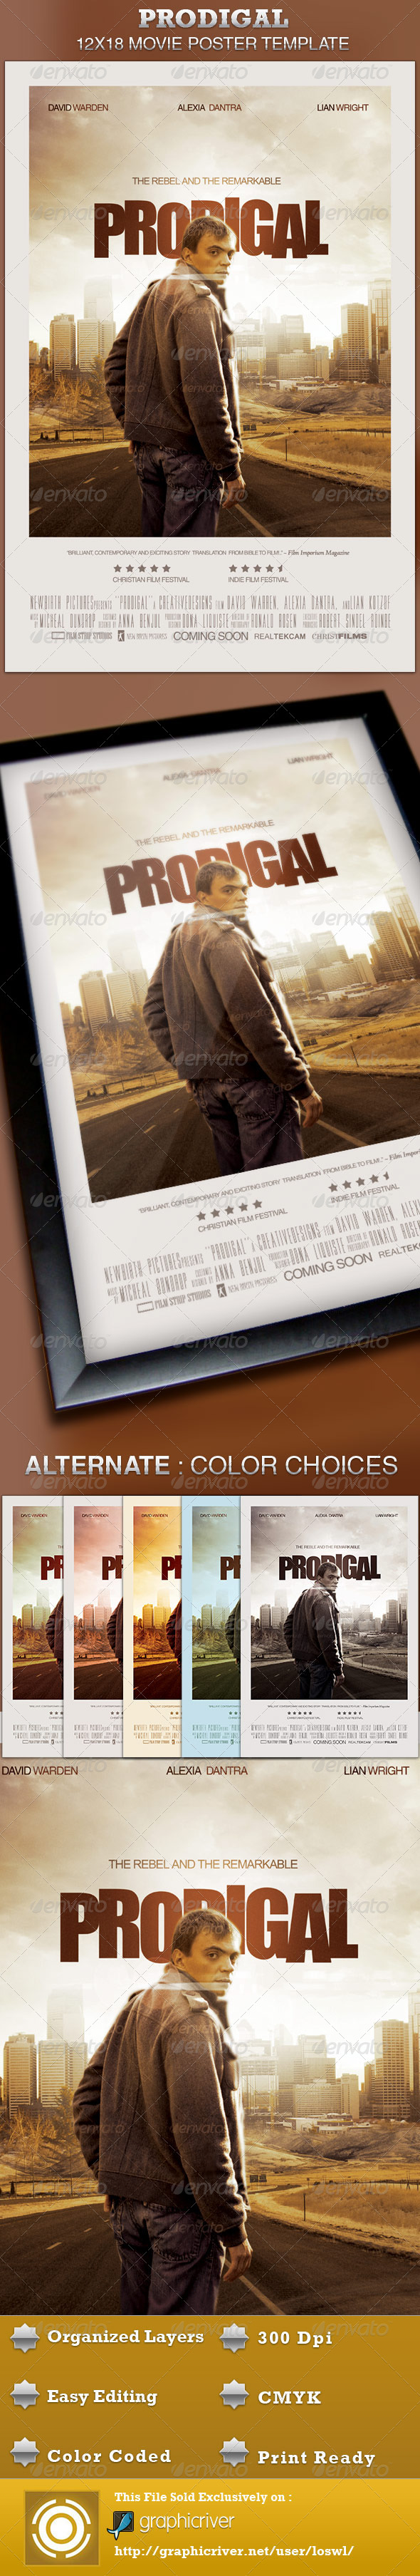 GraphicRiver Prodigal Movie Poster Template 4508816